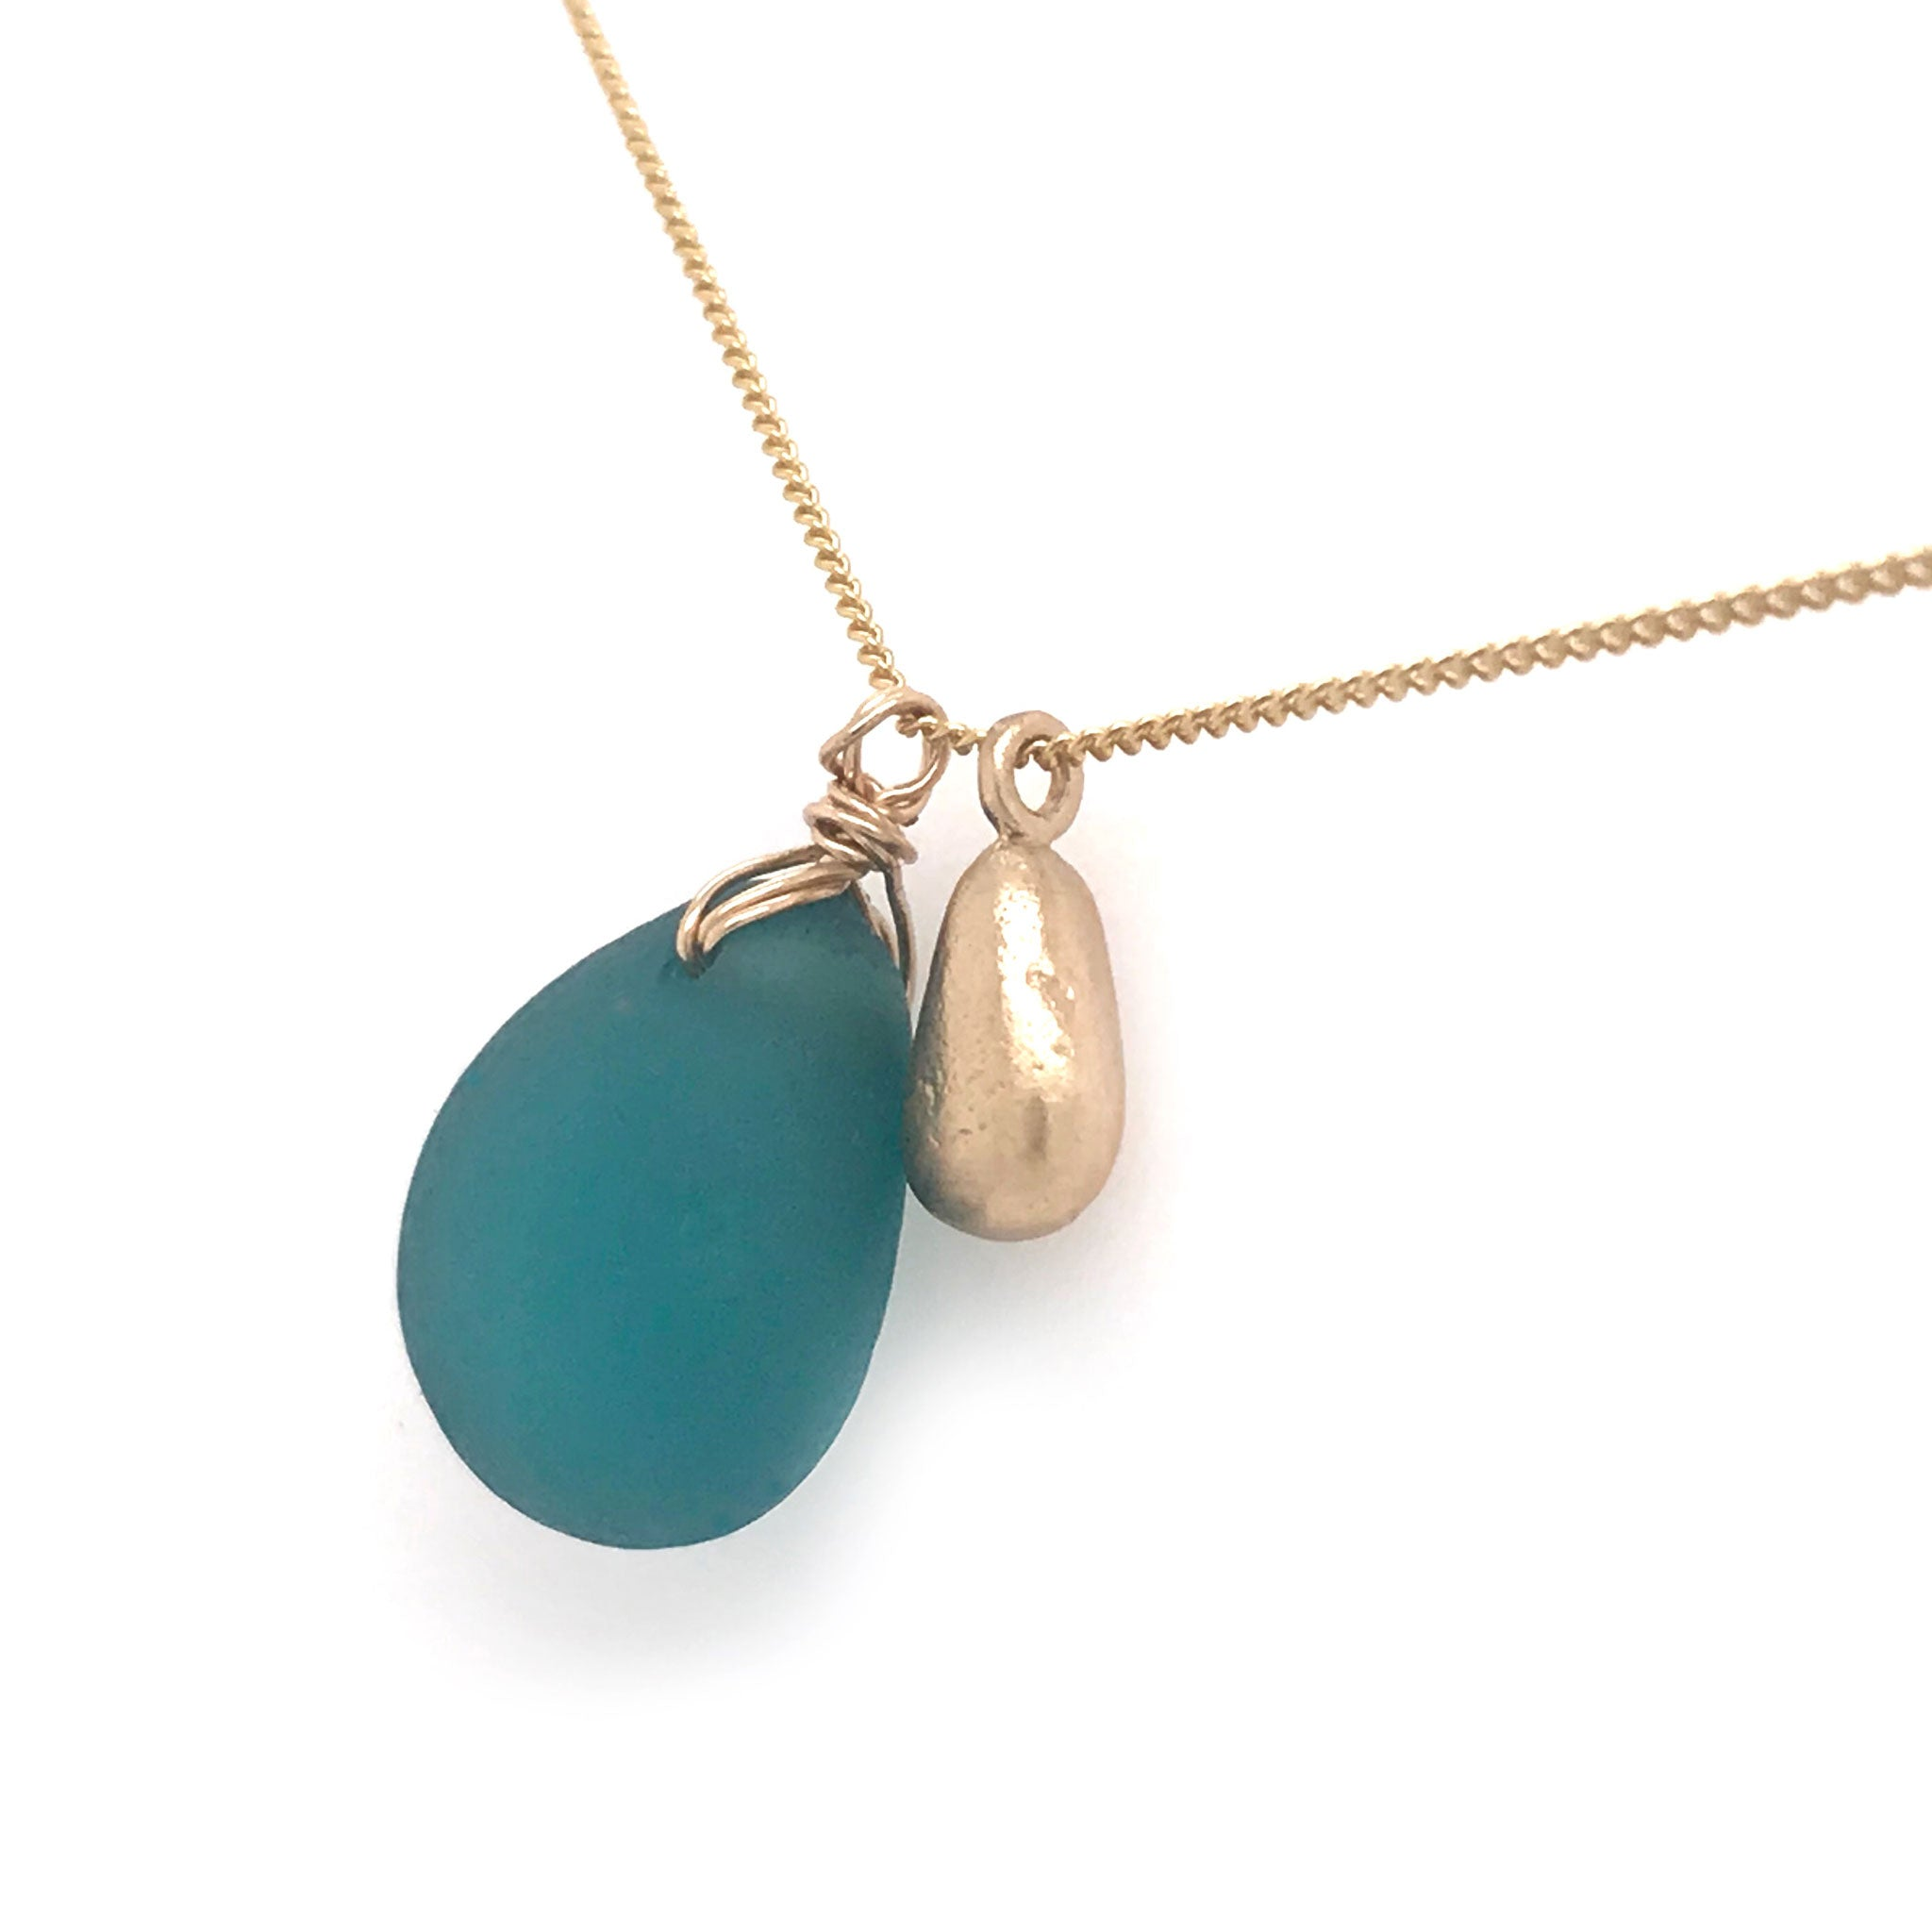 gold necklace with teal seaglass and solid 14k gold teardrop charm Kriket Broadhurst jewellery made in Sydney